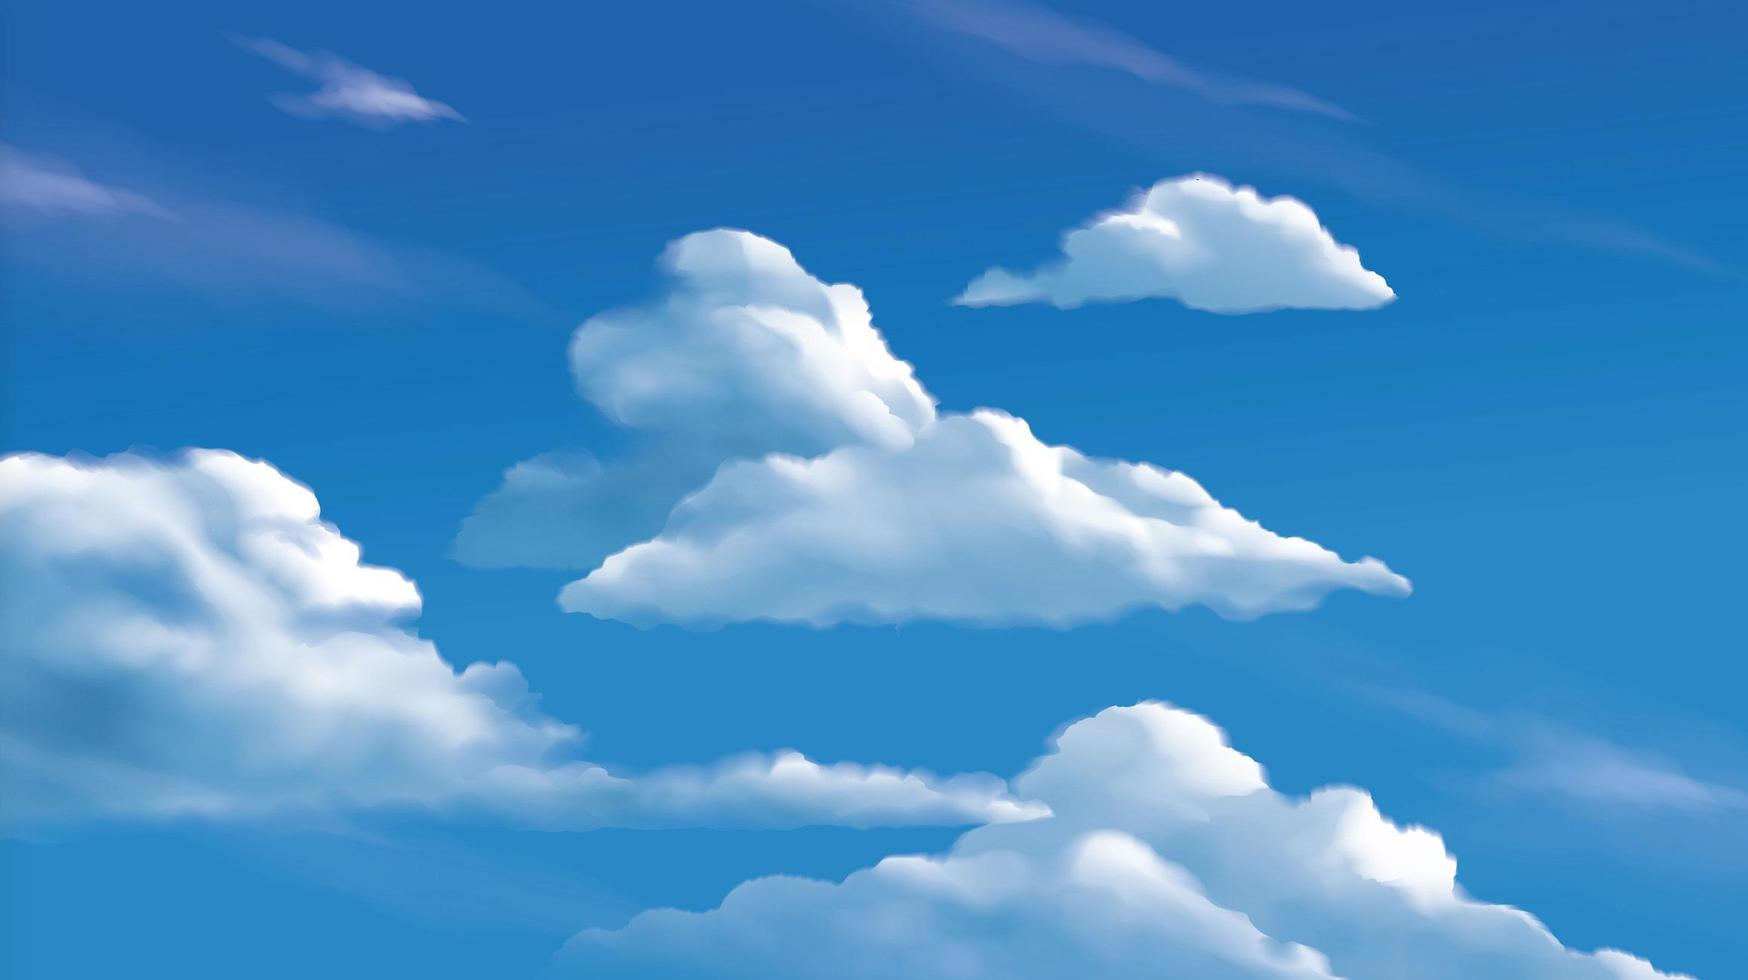 Stratocumulus clouds on the bright blue sky vector